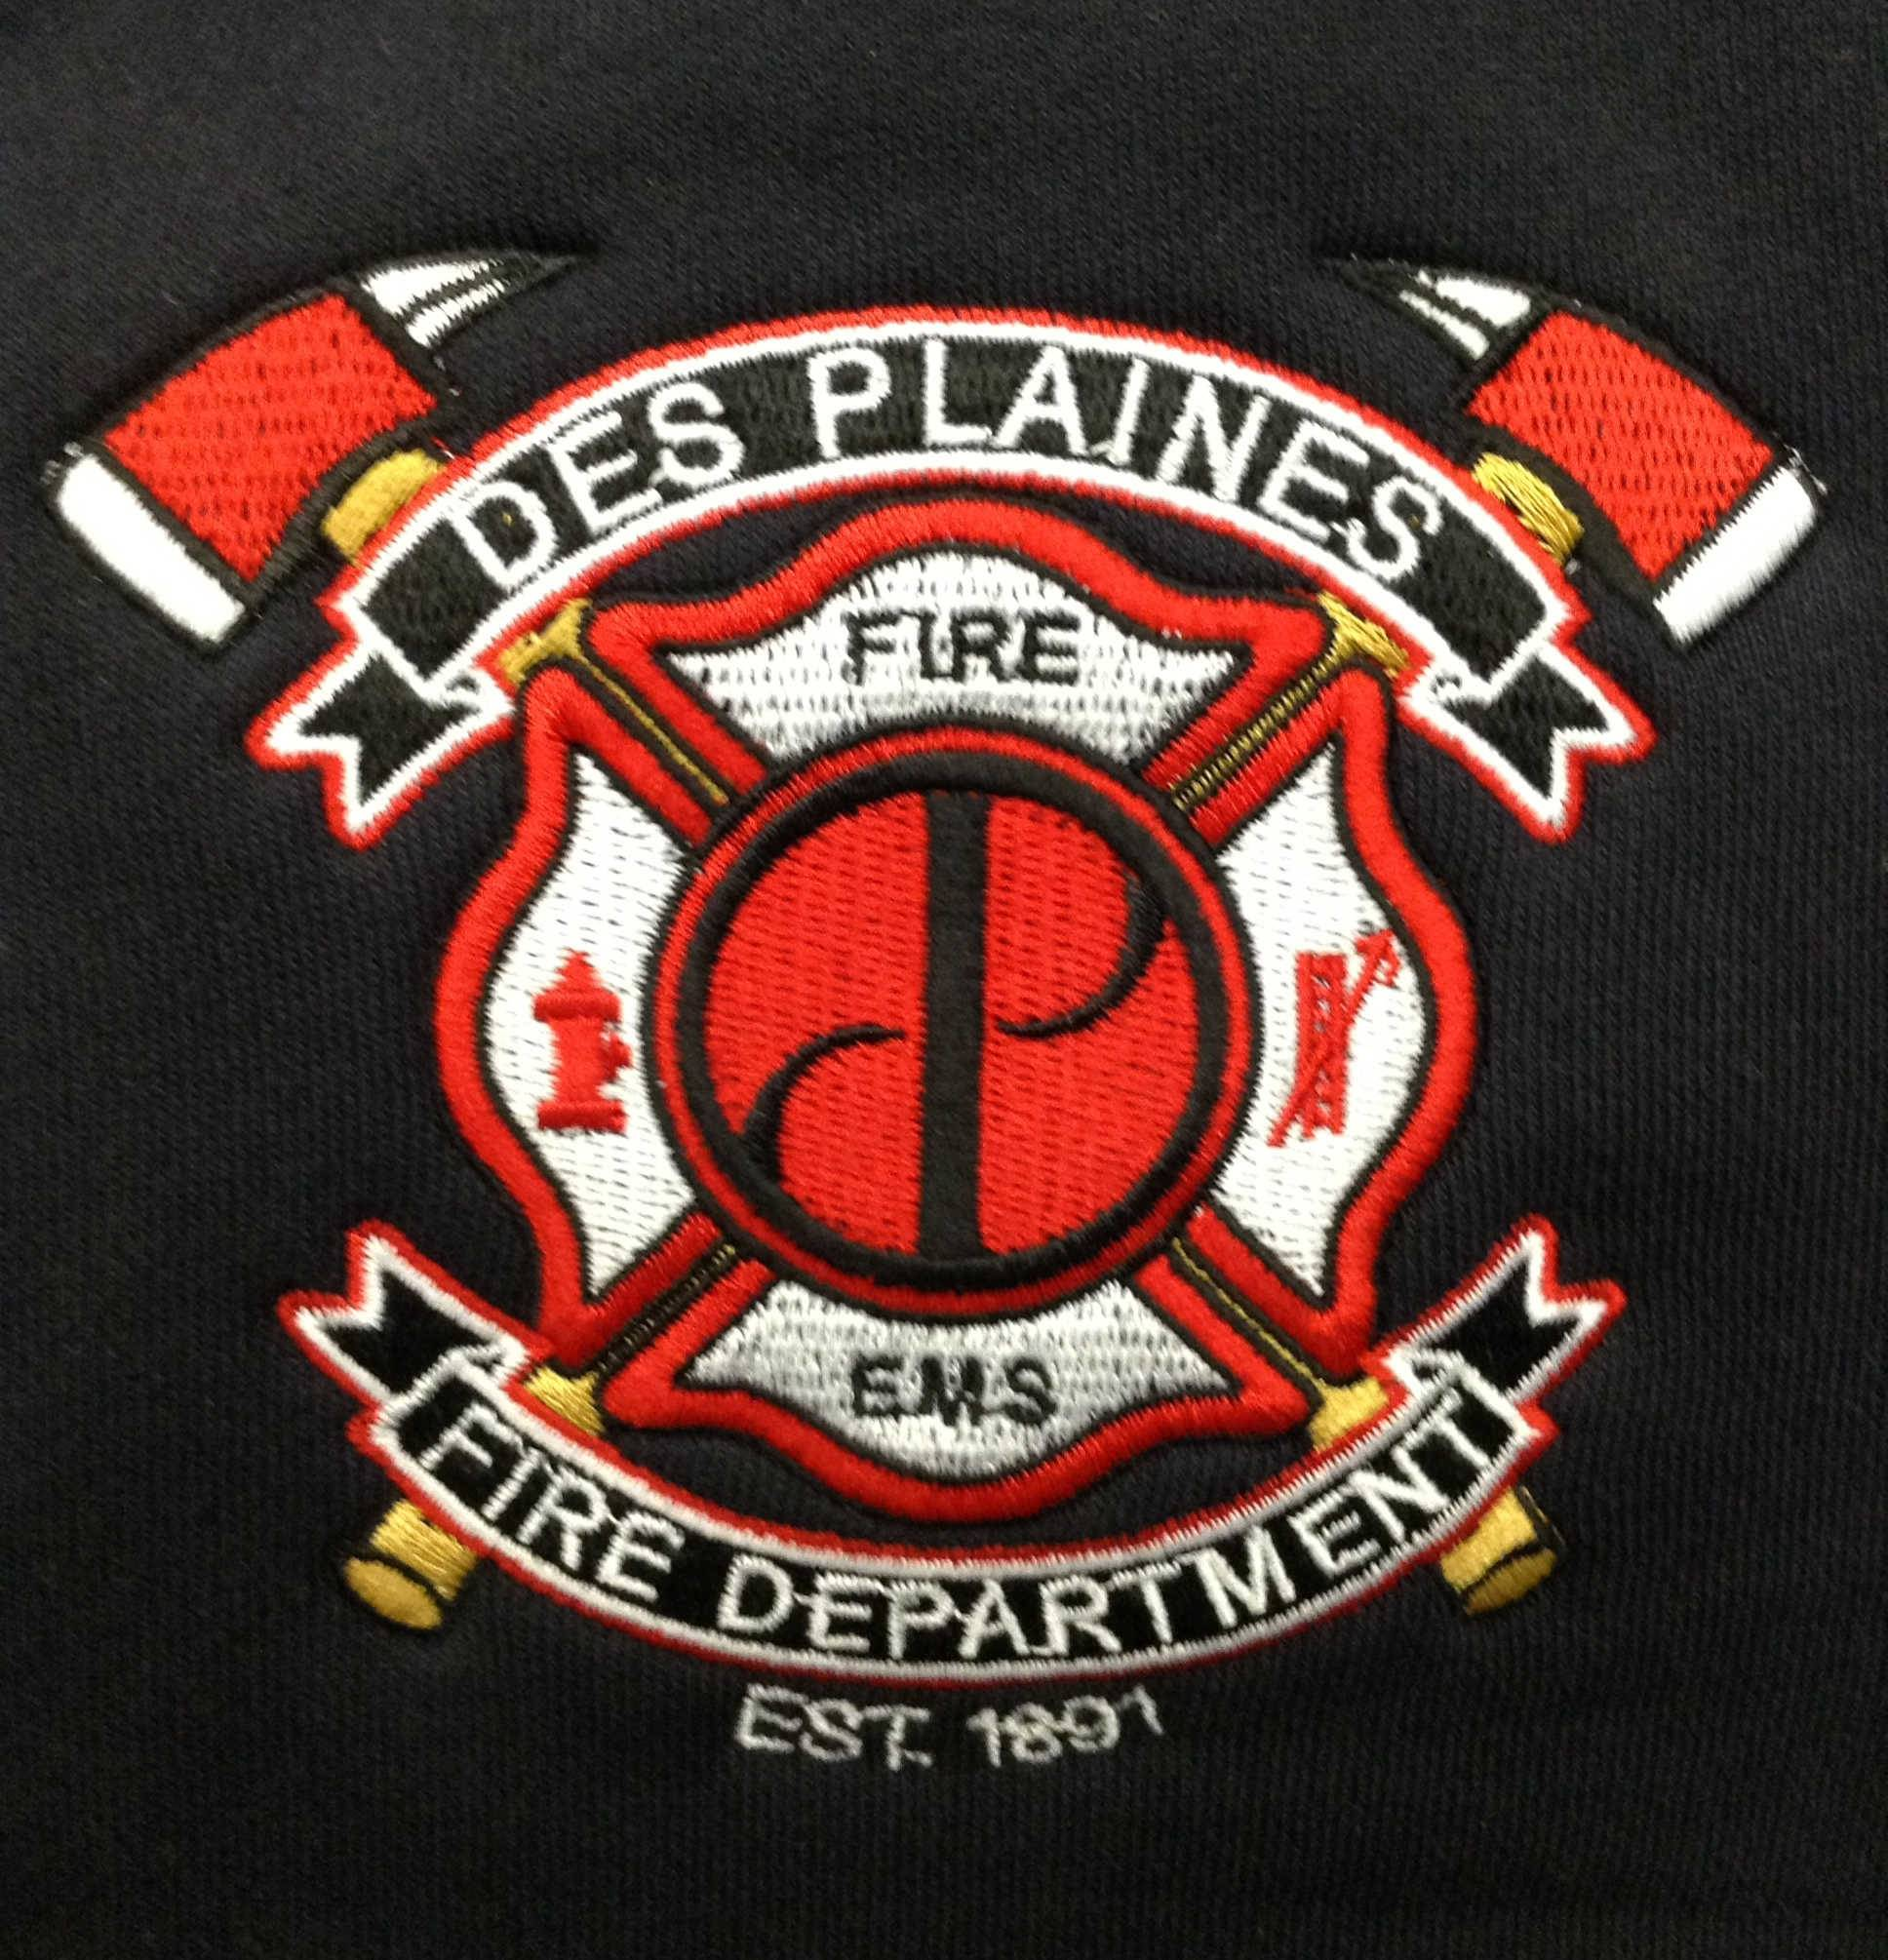 Injured Des Plaines firefighter removed from life support